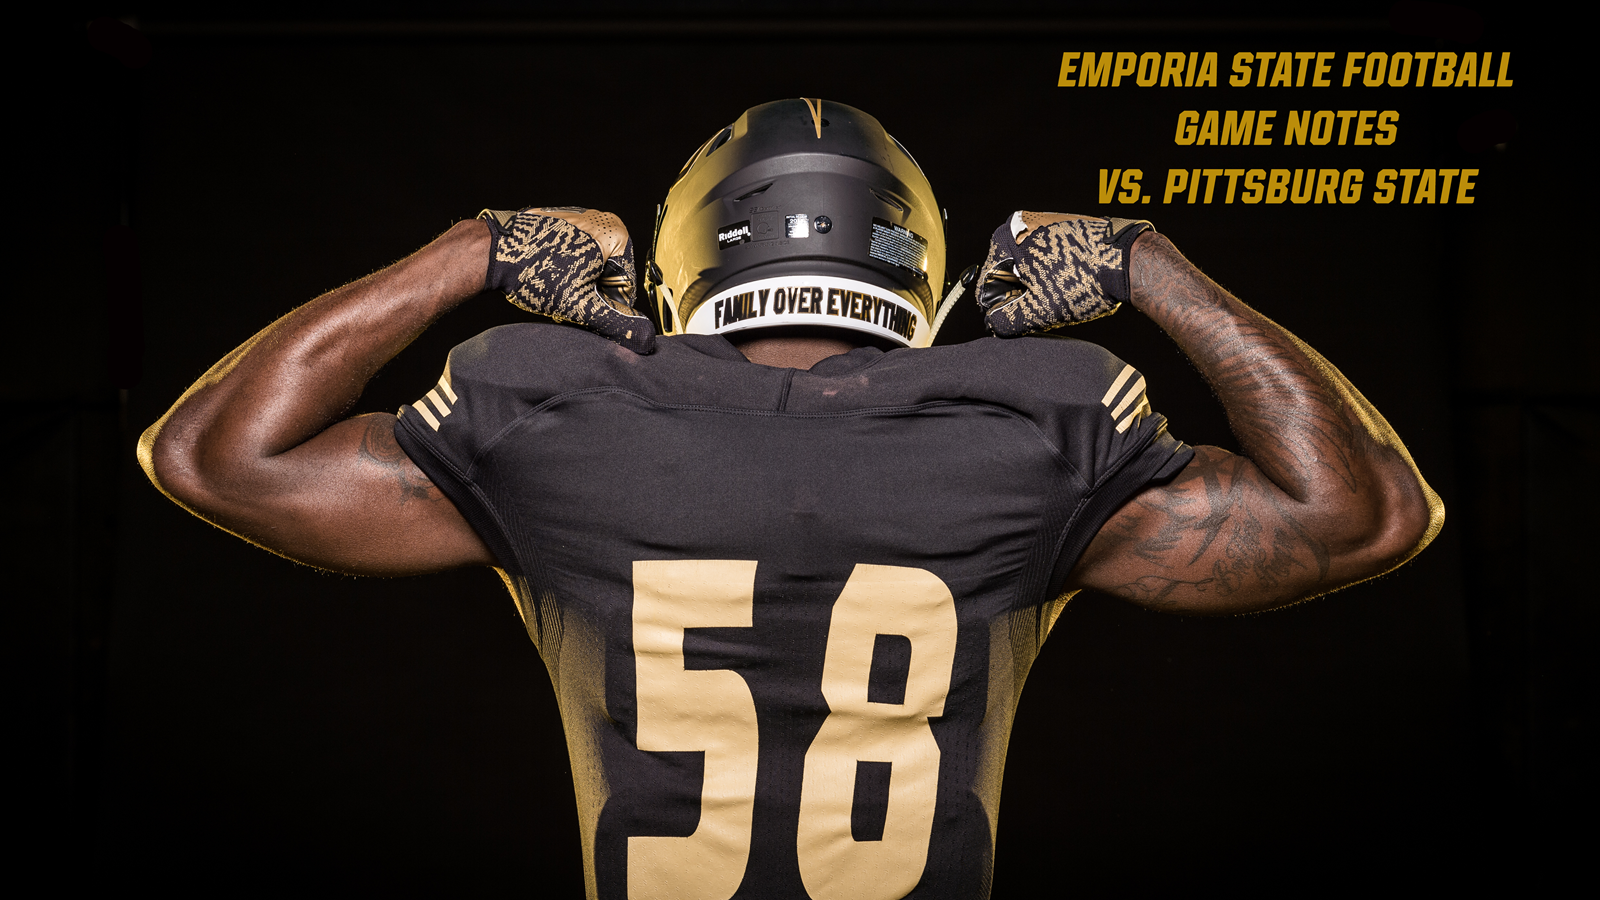 Emporia State Football Plays Host To Pittsburg State In Home Opener